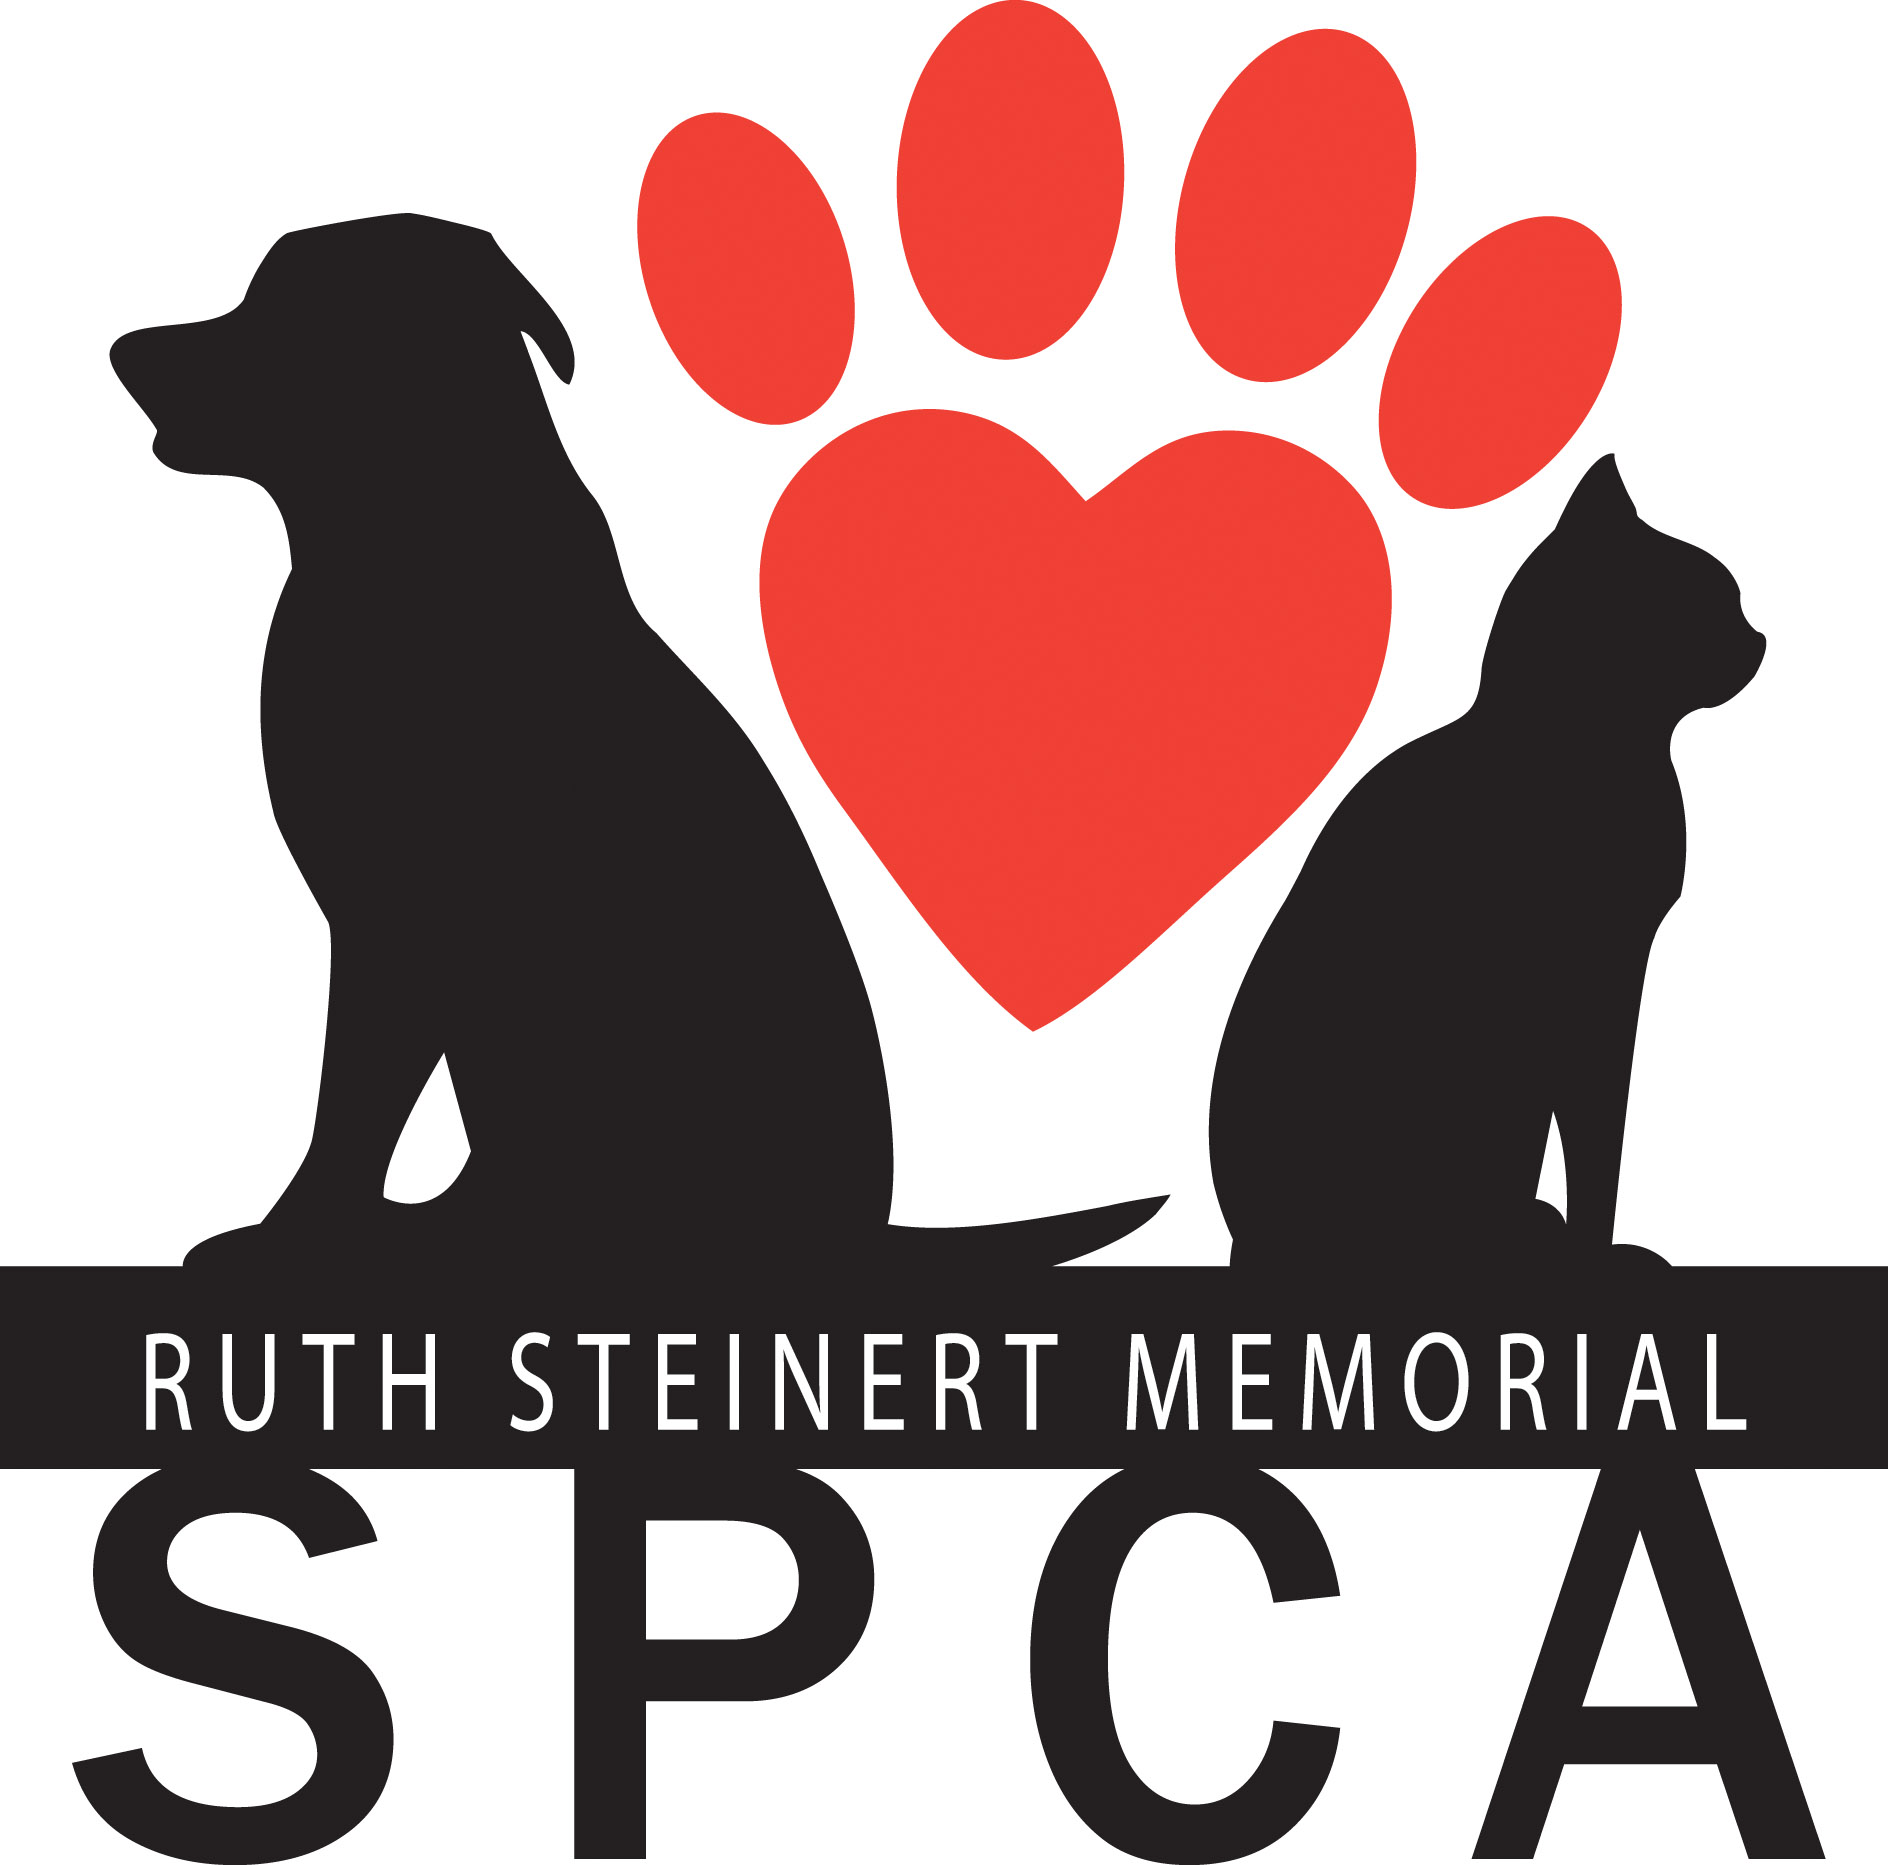 Ruth Steinert Memorial SPCA